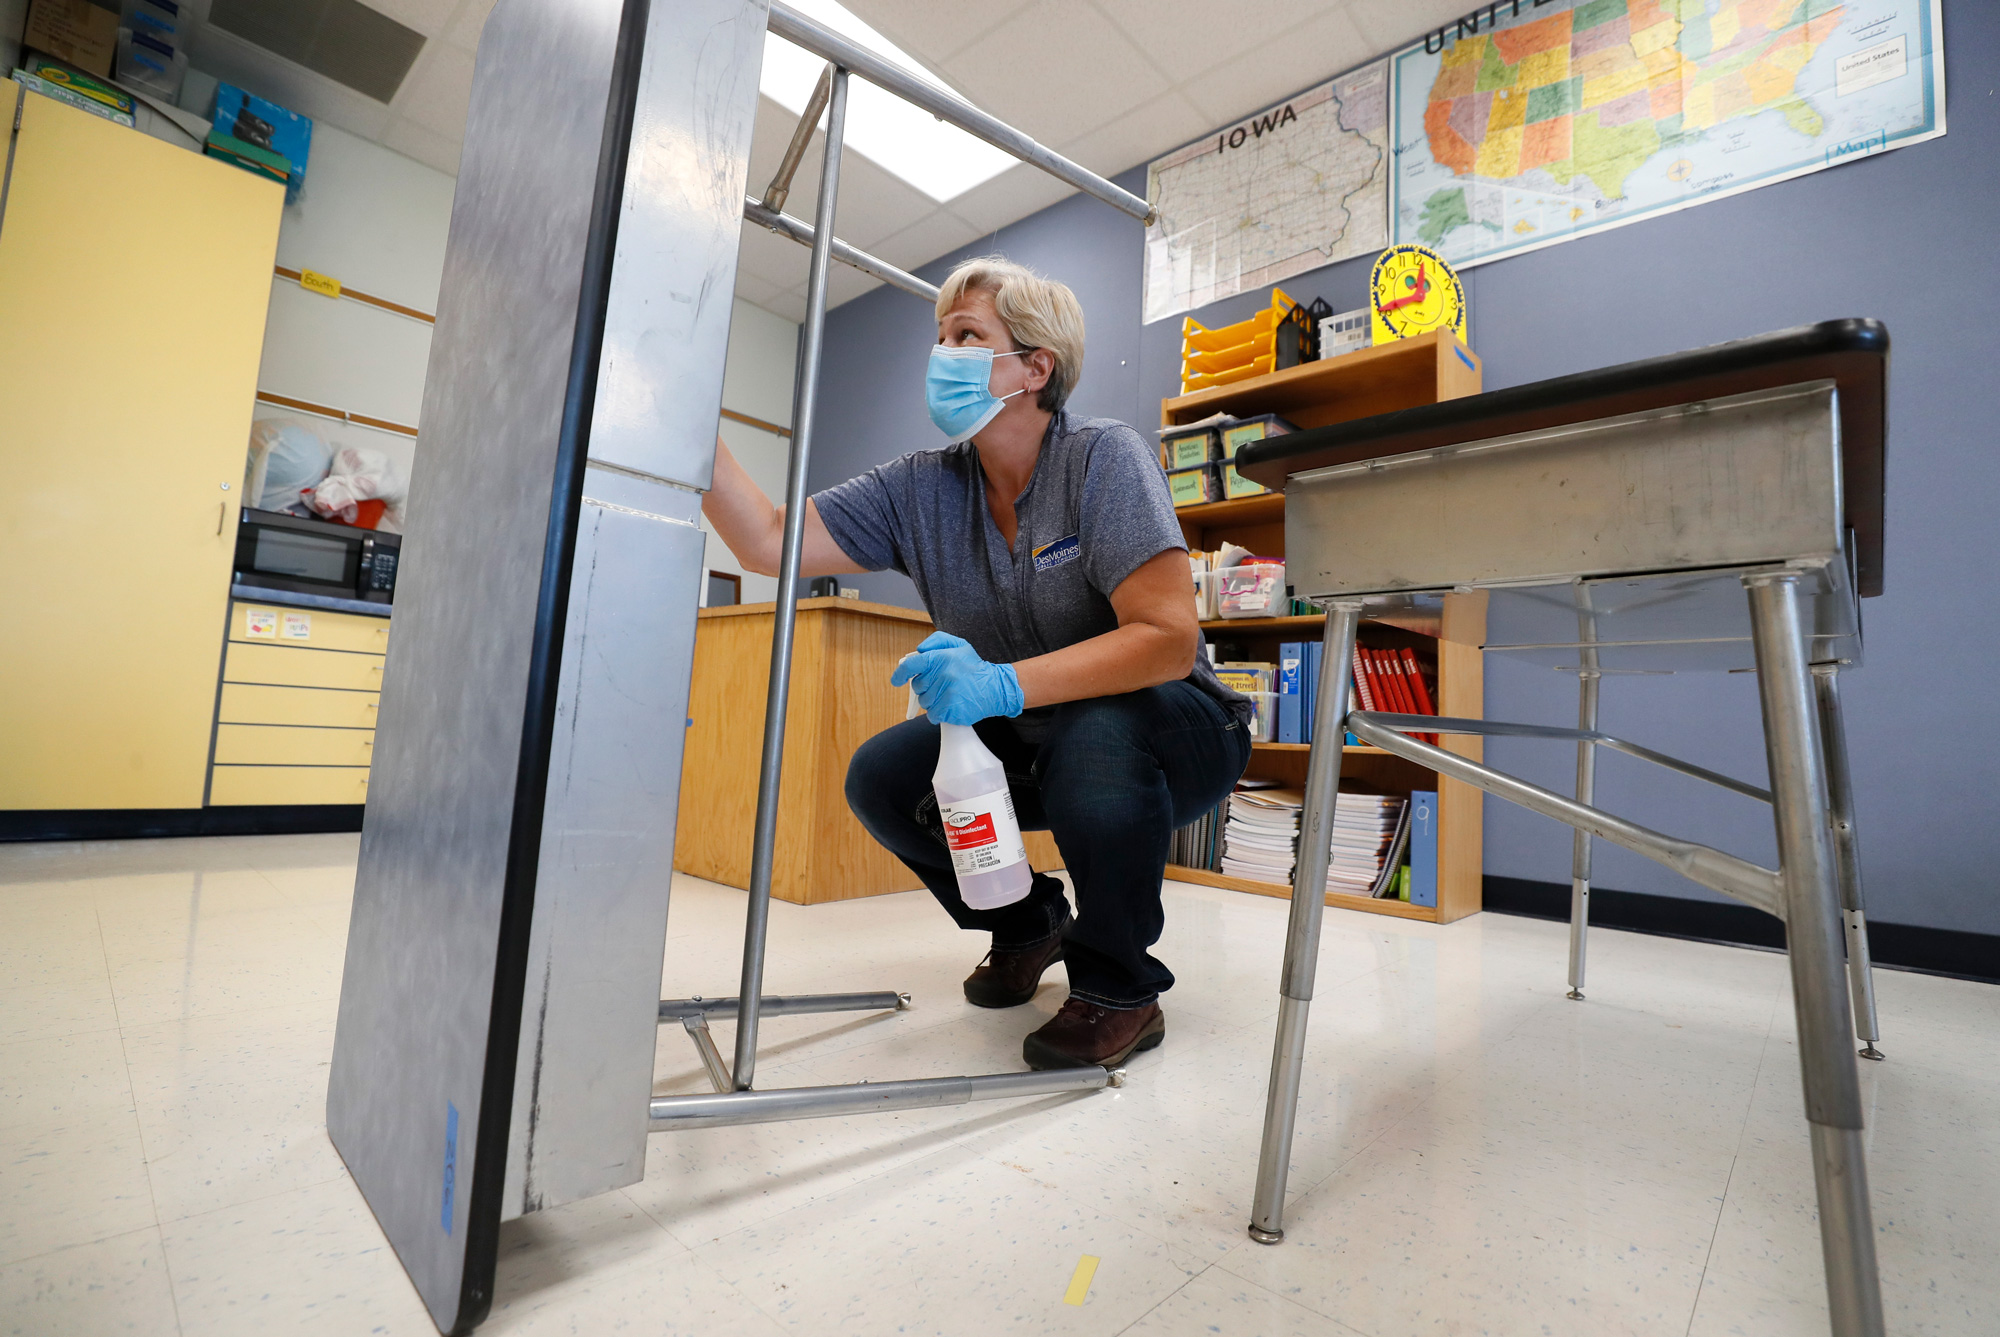 Des Moines Public Schools custodian Cynthia Adams cleans a desk in a classroom at Brubaker Elementary School on July 8 in Des Moines, Iowa.